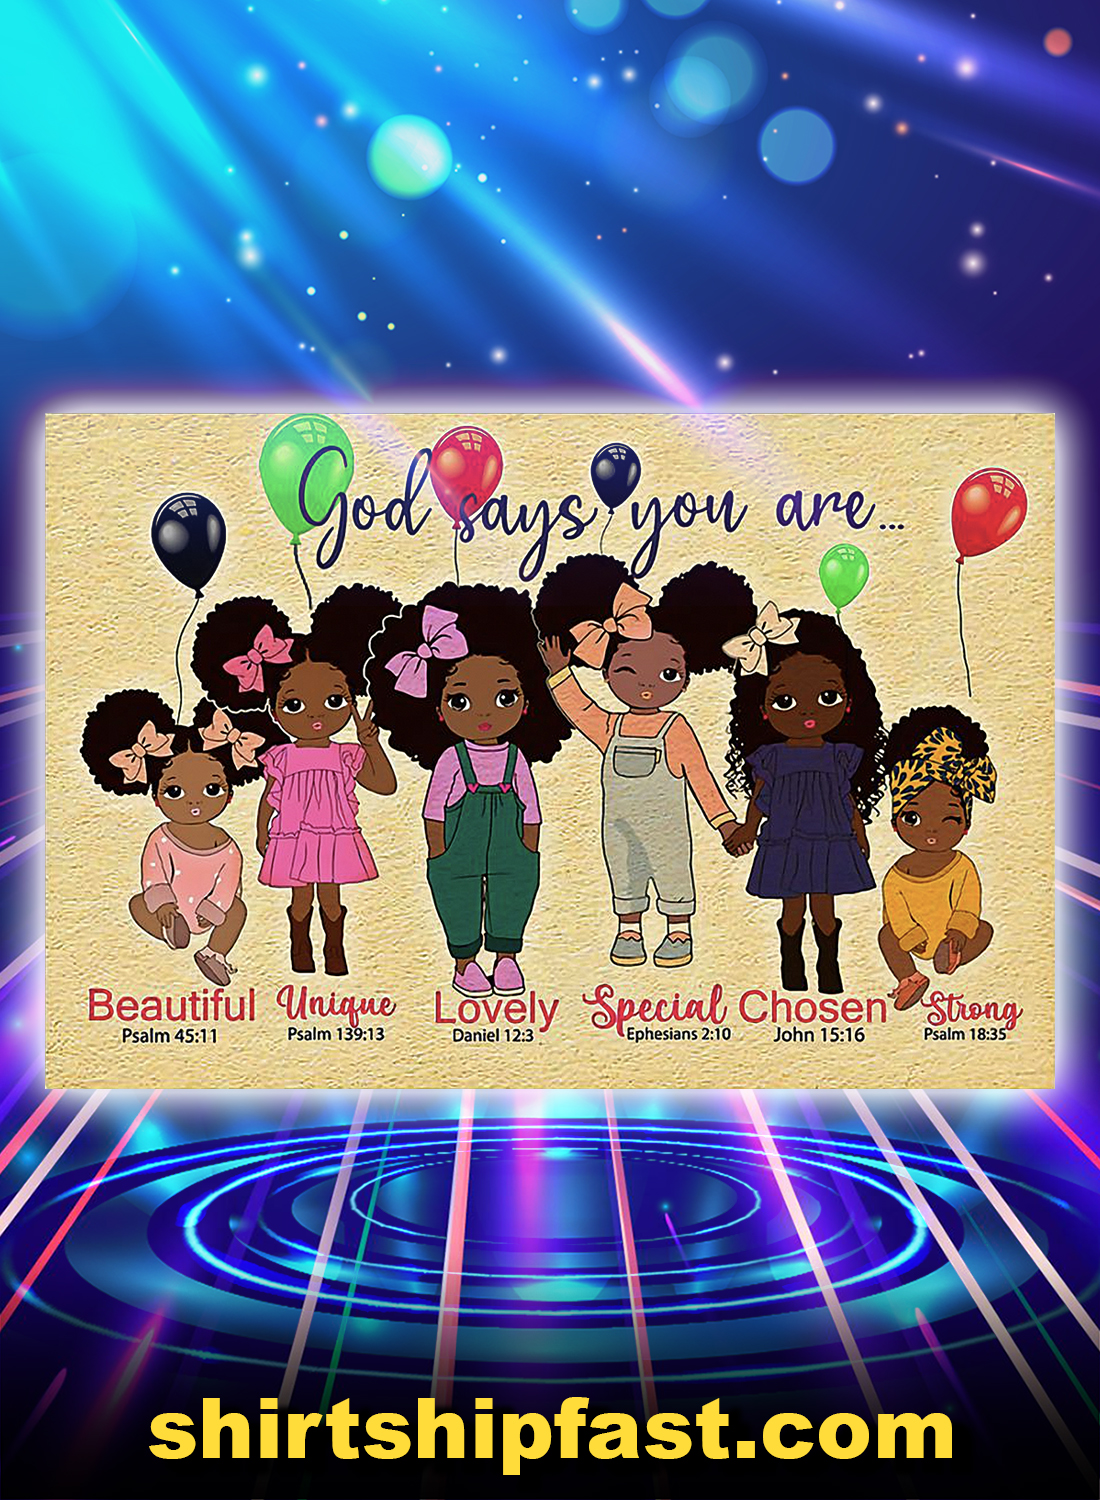 Black girl god says you are canvas prints - Picture 3